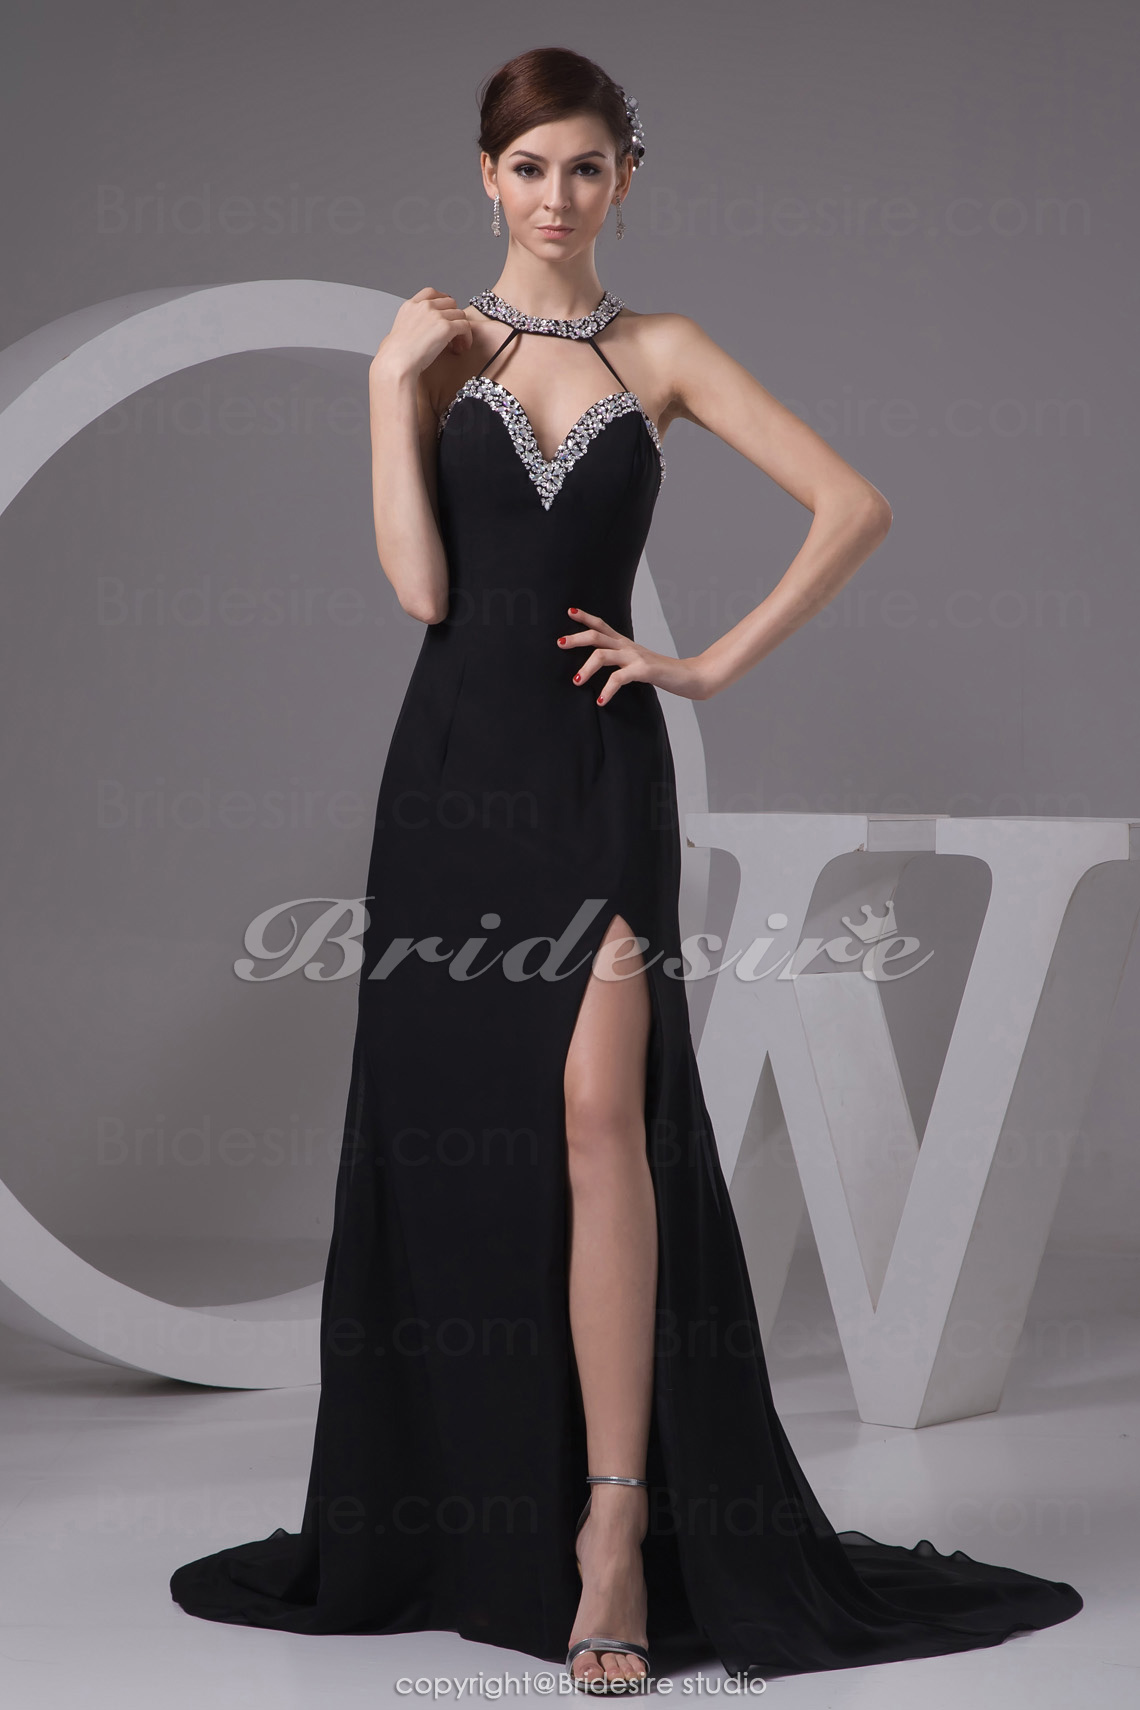 A-line Halter Sweep/Brush Train Sleeveless Chiffon Dress